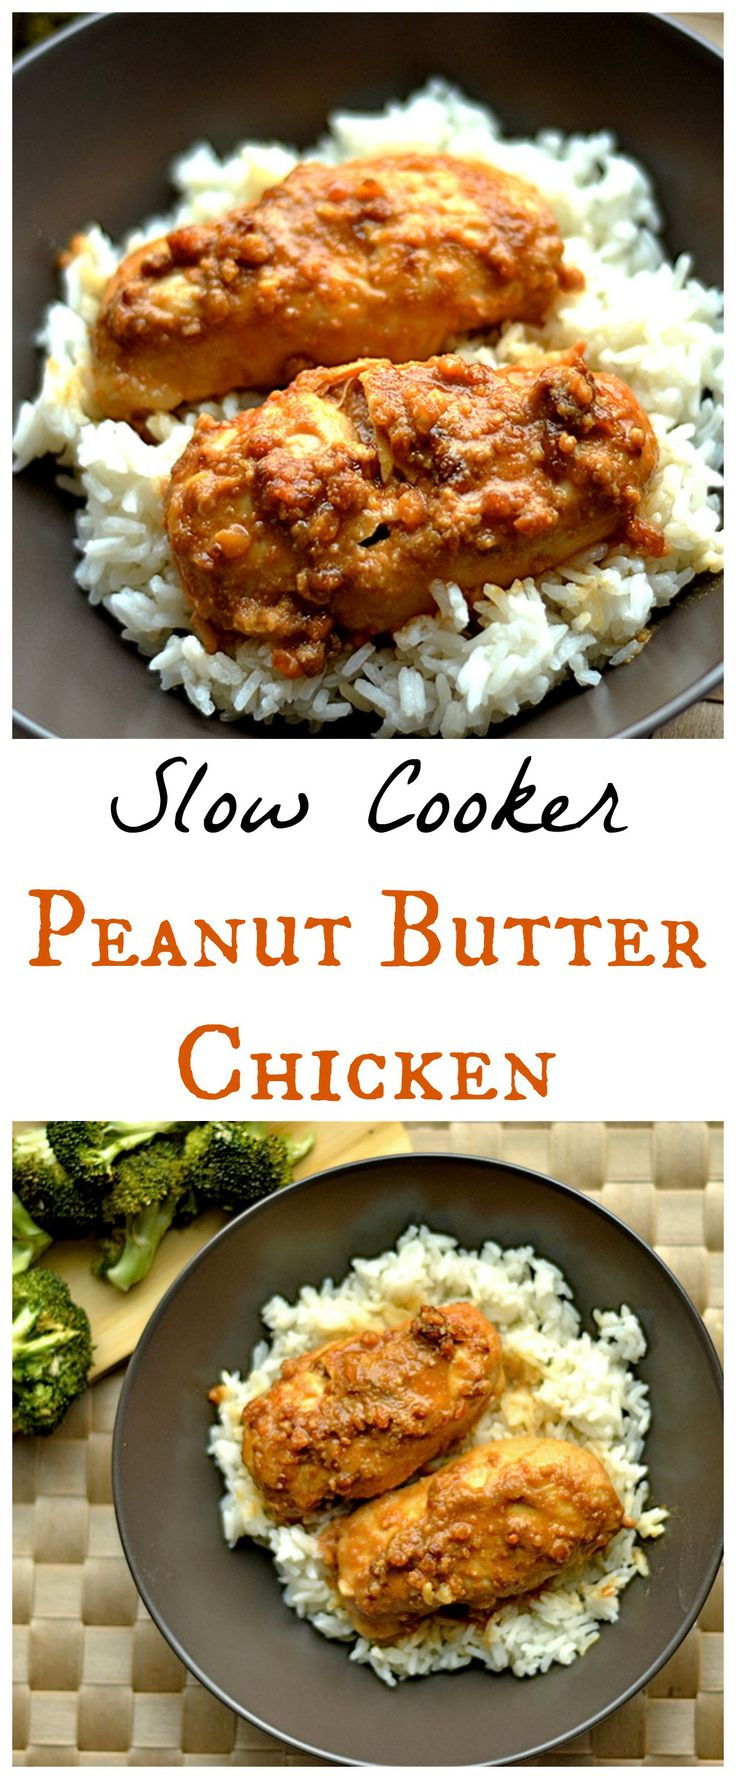 """Slow Cooker Peanut Butter Chicken-  You  had me at """"peanut butter""""!  But it looks very, very easy, and tasty.  I definitely want to make this soon."""